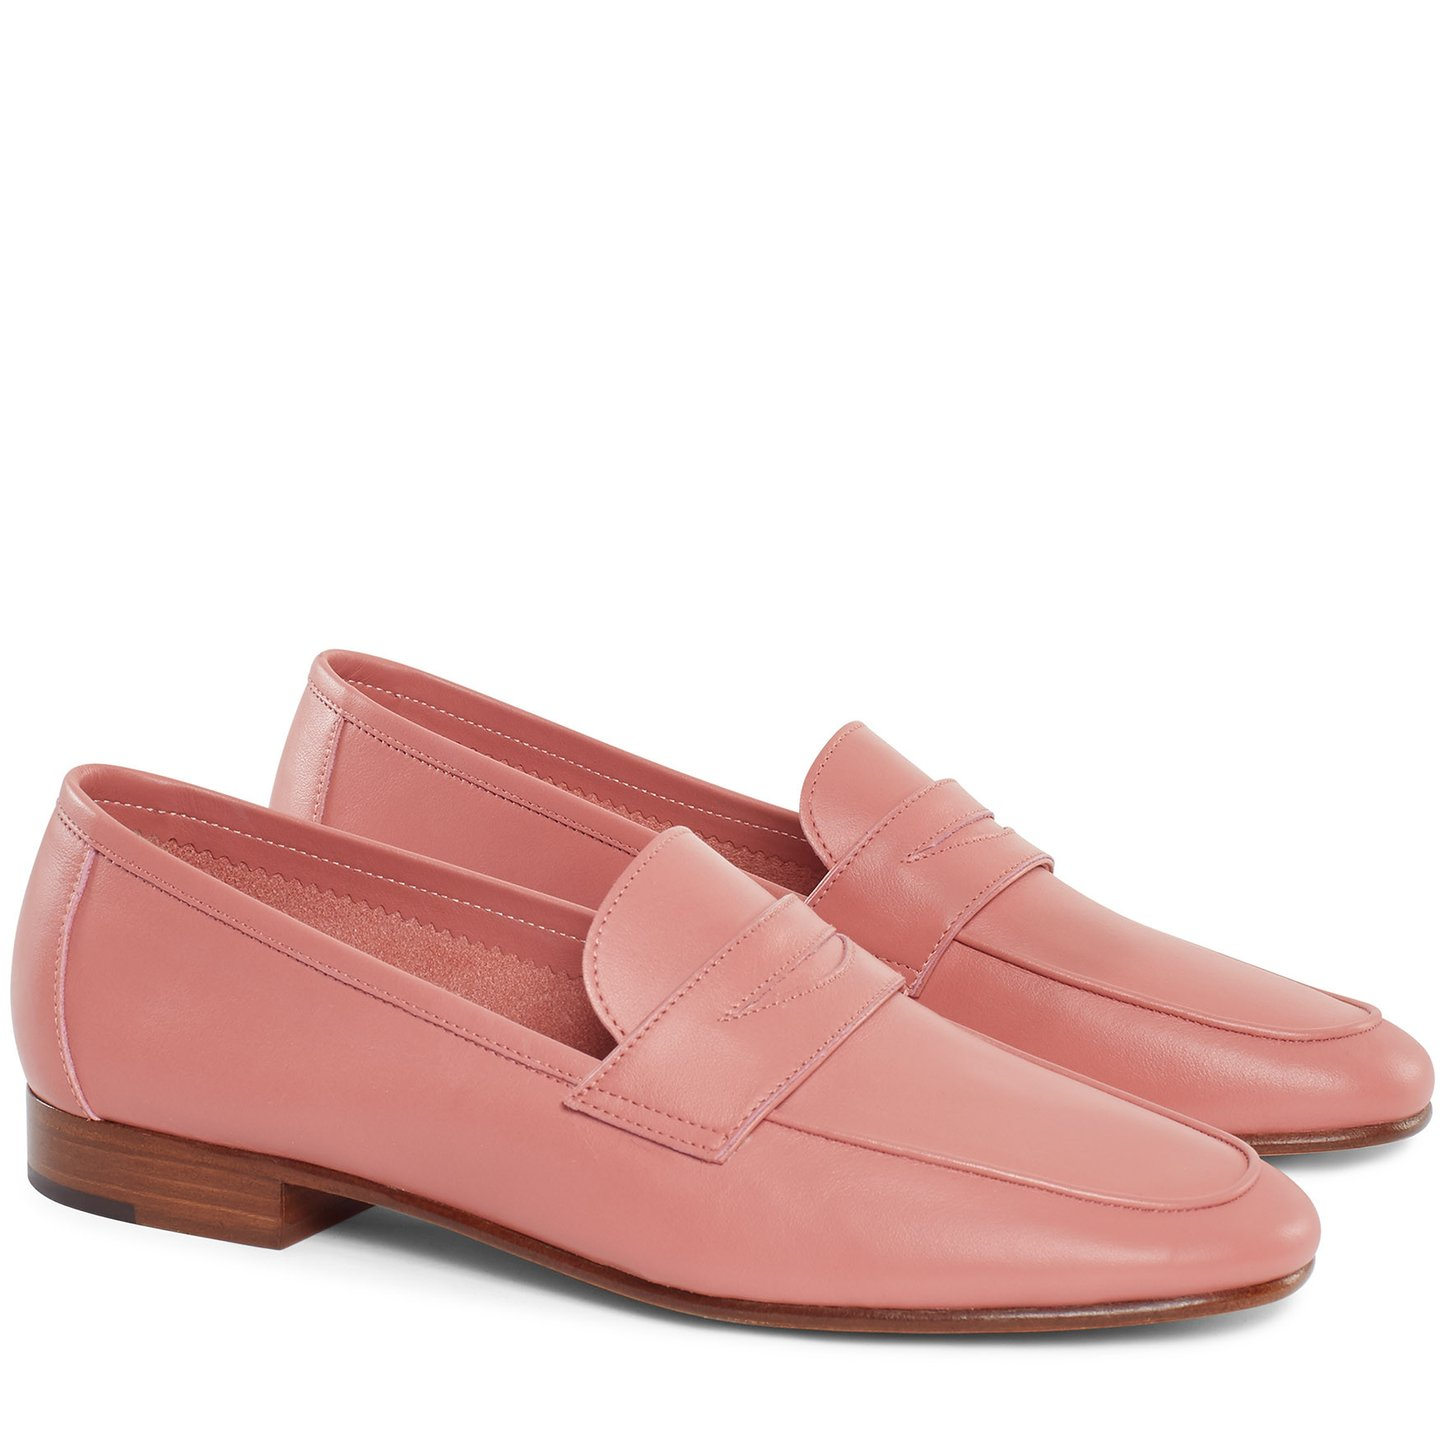 Classic_Loafer_Calf_Blush_Detail_2_1440x.jpg